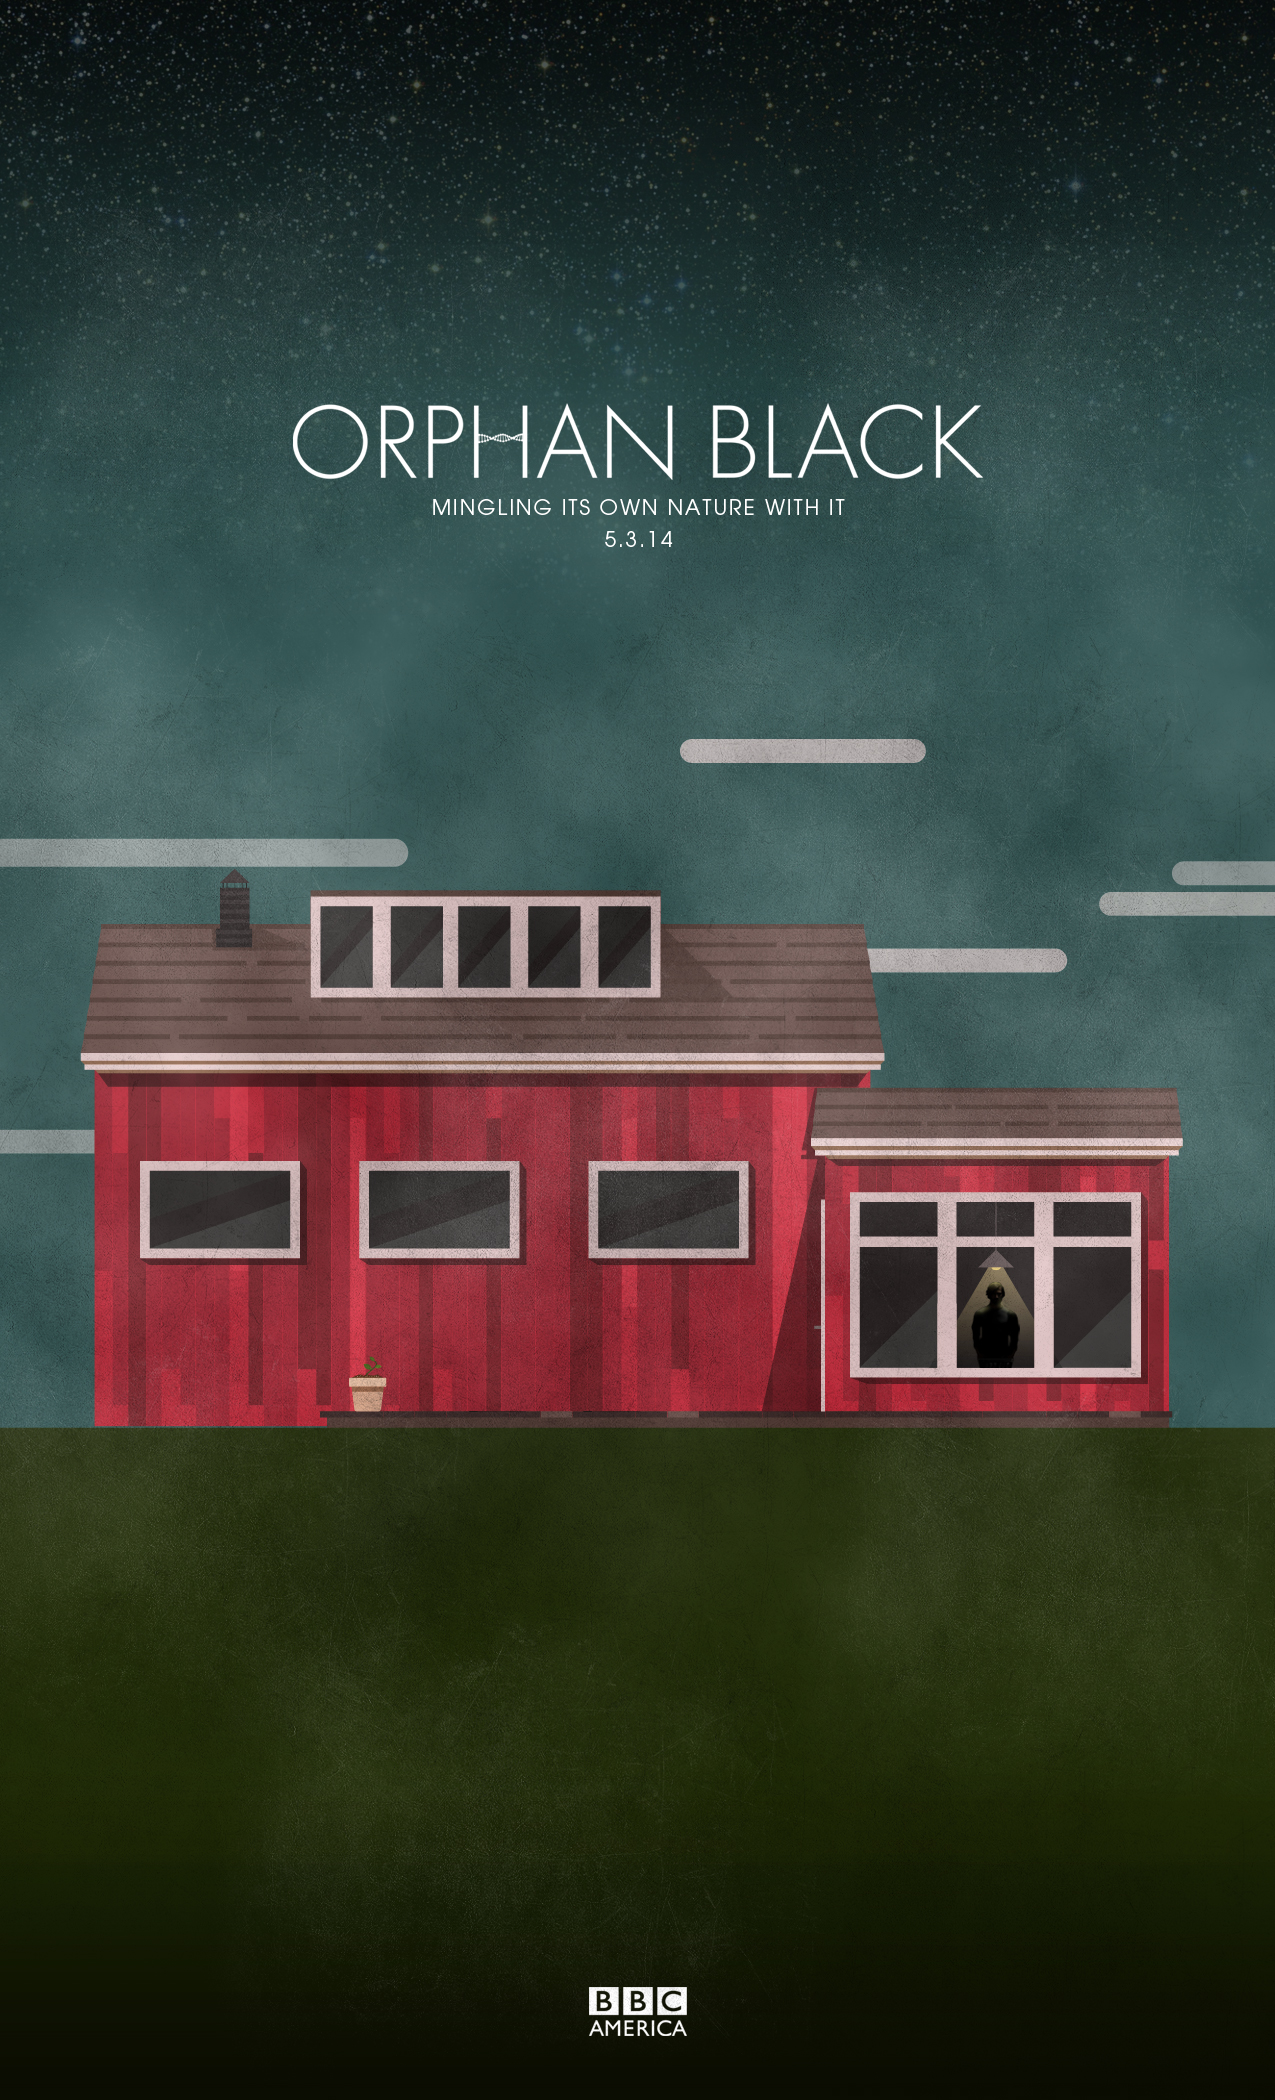 Orphan Black: Mingling Its Own Nature With It